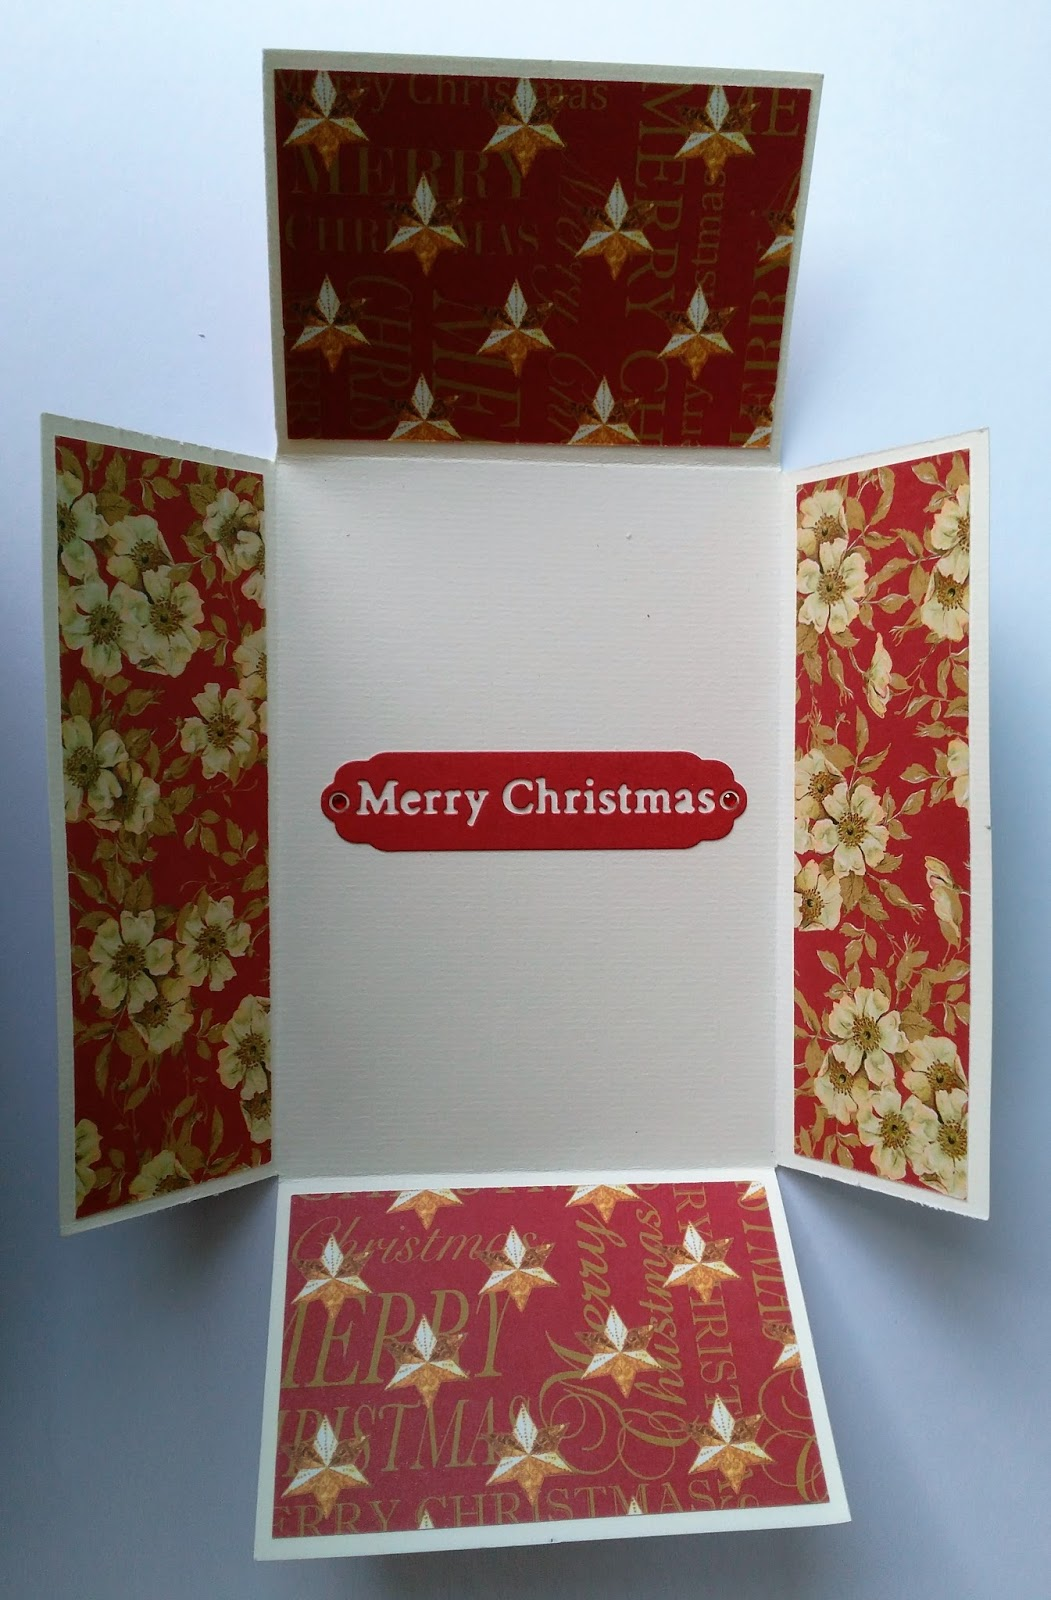 To Make This Card, All You Need Is A Sheet Of A4 Card. 1) Fold Both Sides  Into The Middle To Make A Long Skinny Gatefold Card.